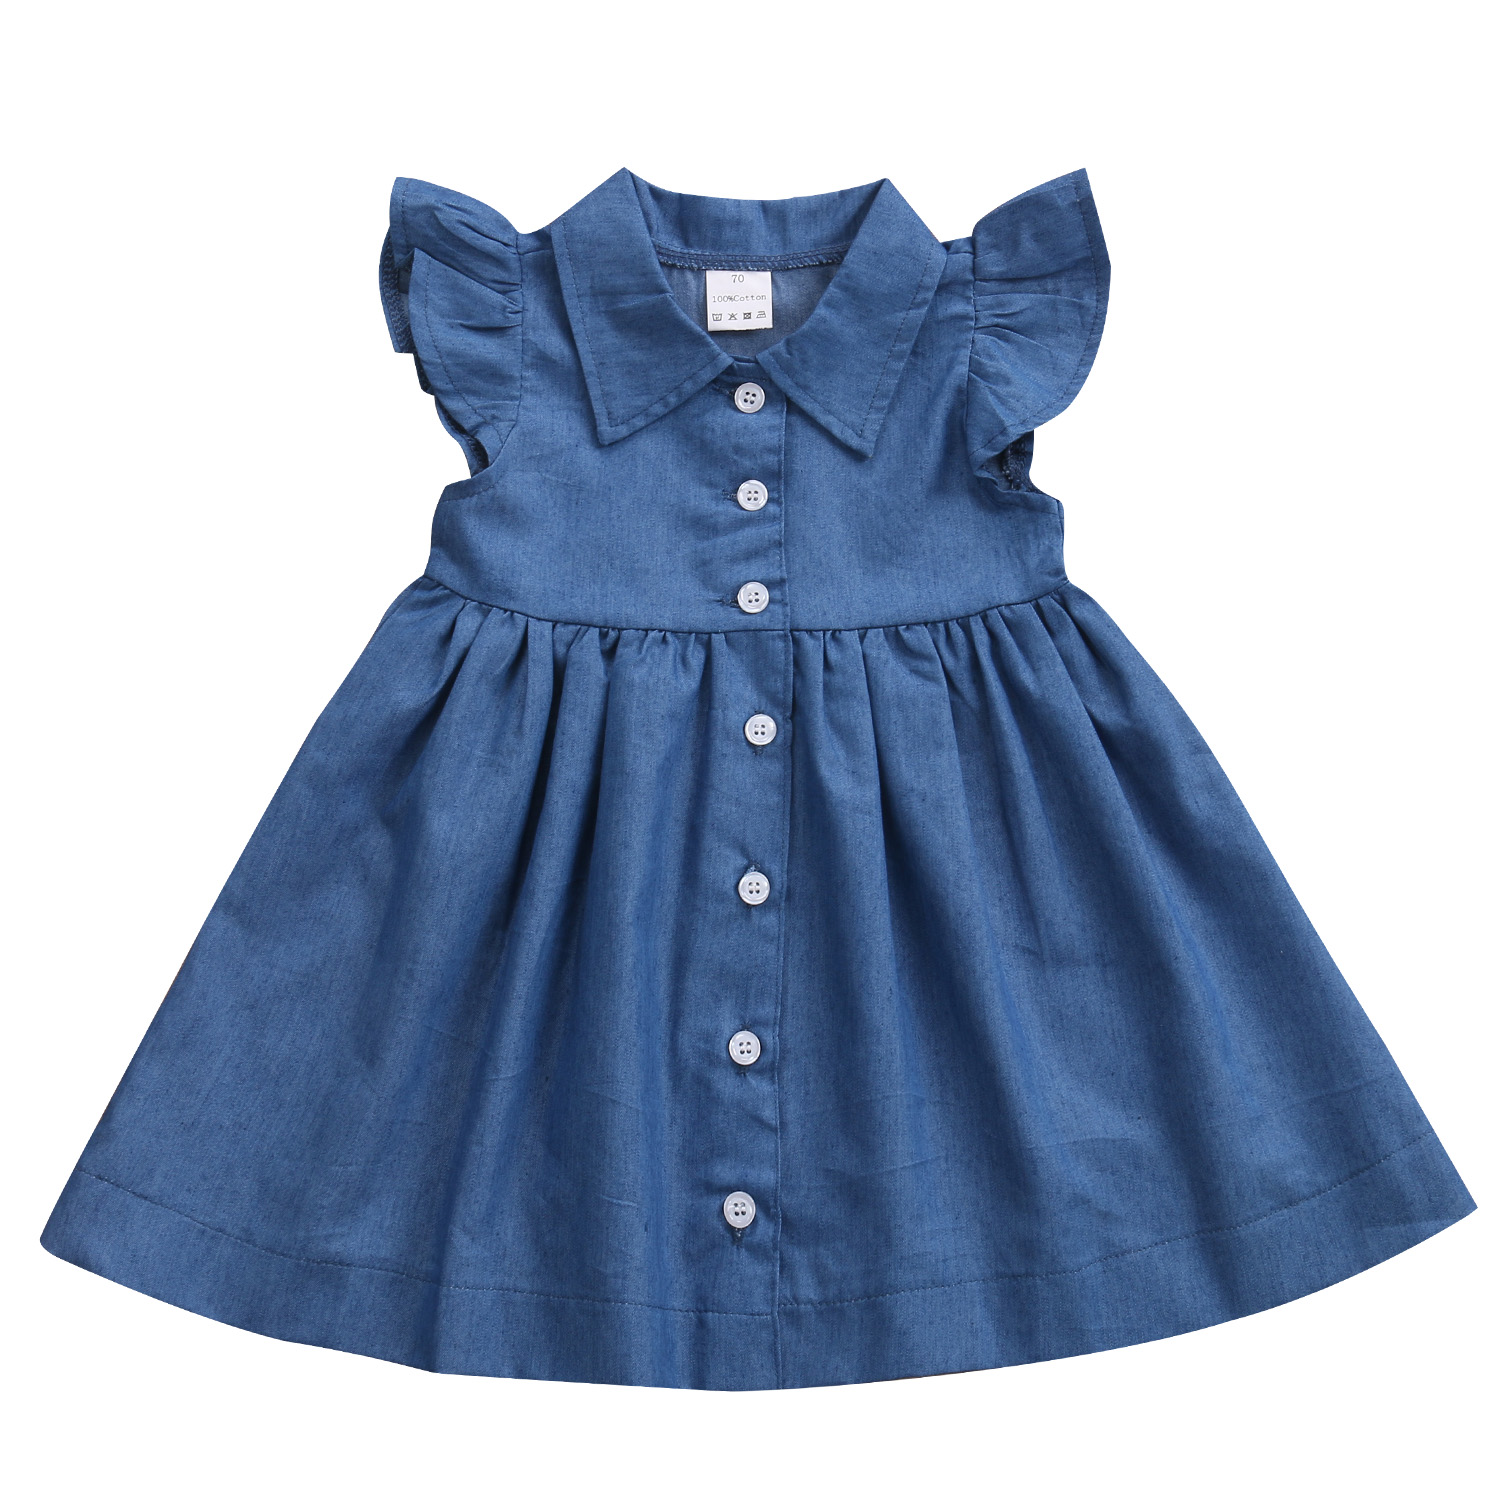 Girl Denim Princess Pageant Party Casual Tulle Tutu Dress Kids Infant Baby Girls Dresses Casual Cute Sleeve 2016 new cute baby girls dress kids princess party denim tulle bow belt tutu dresses 3 8y